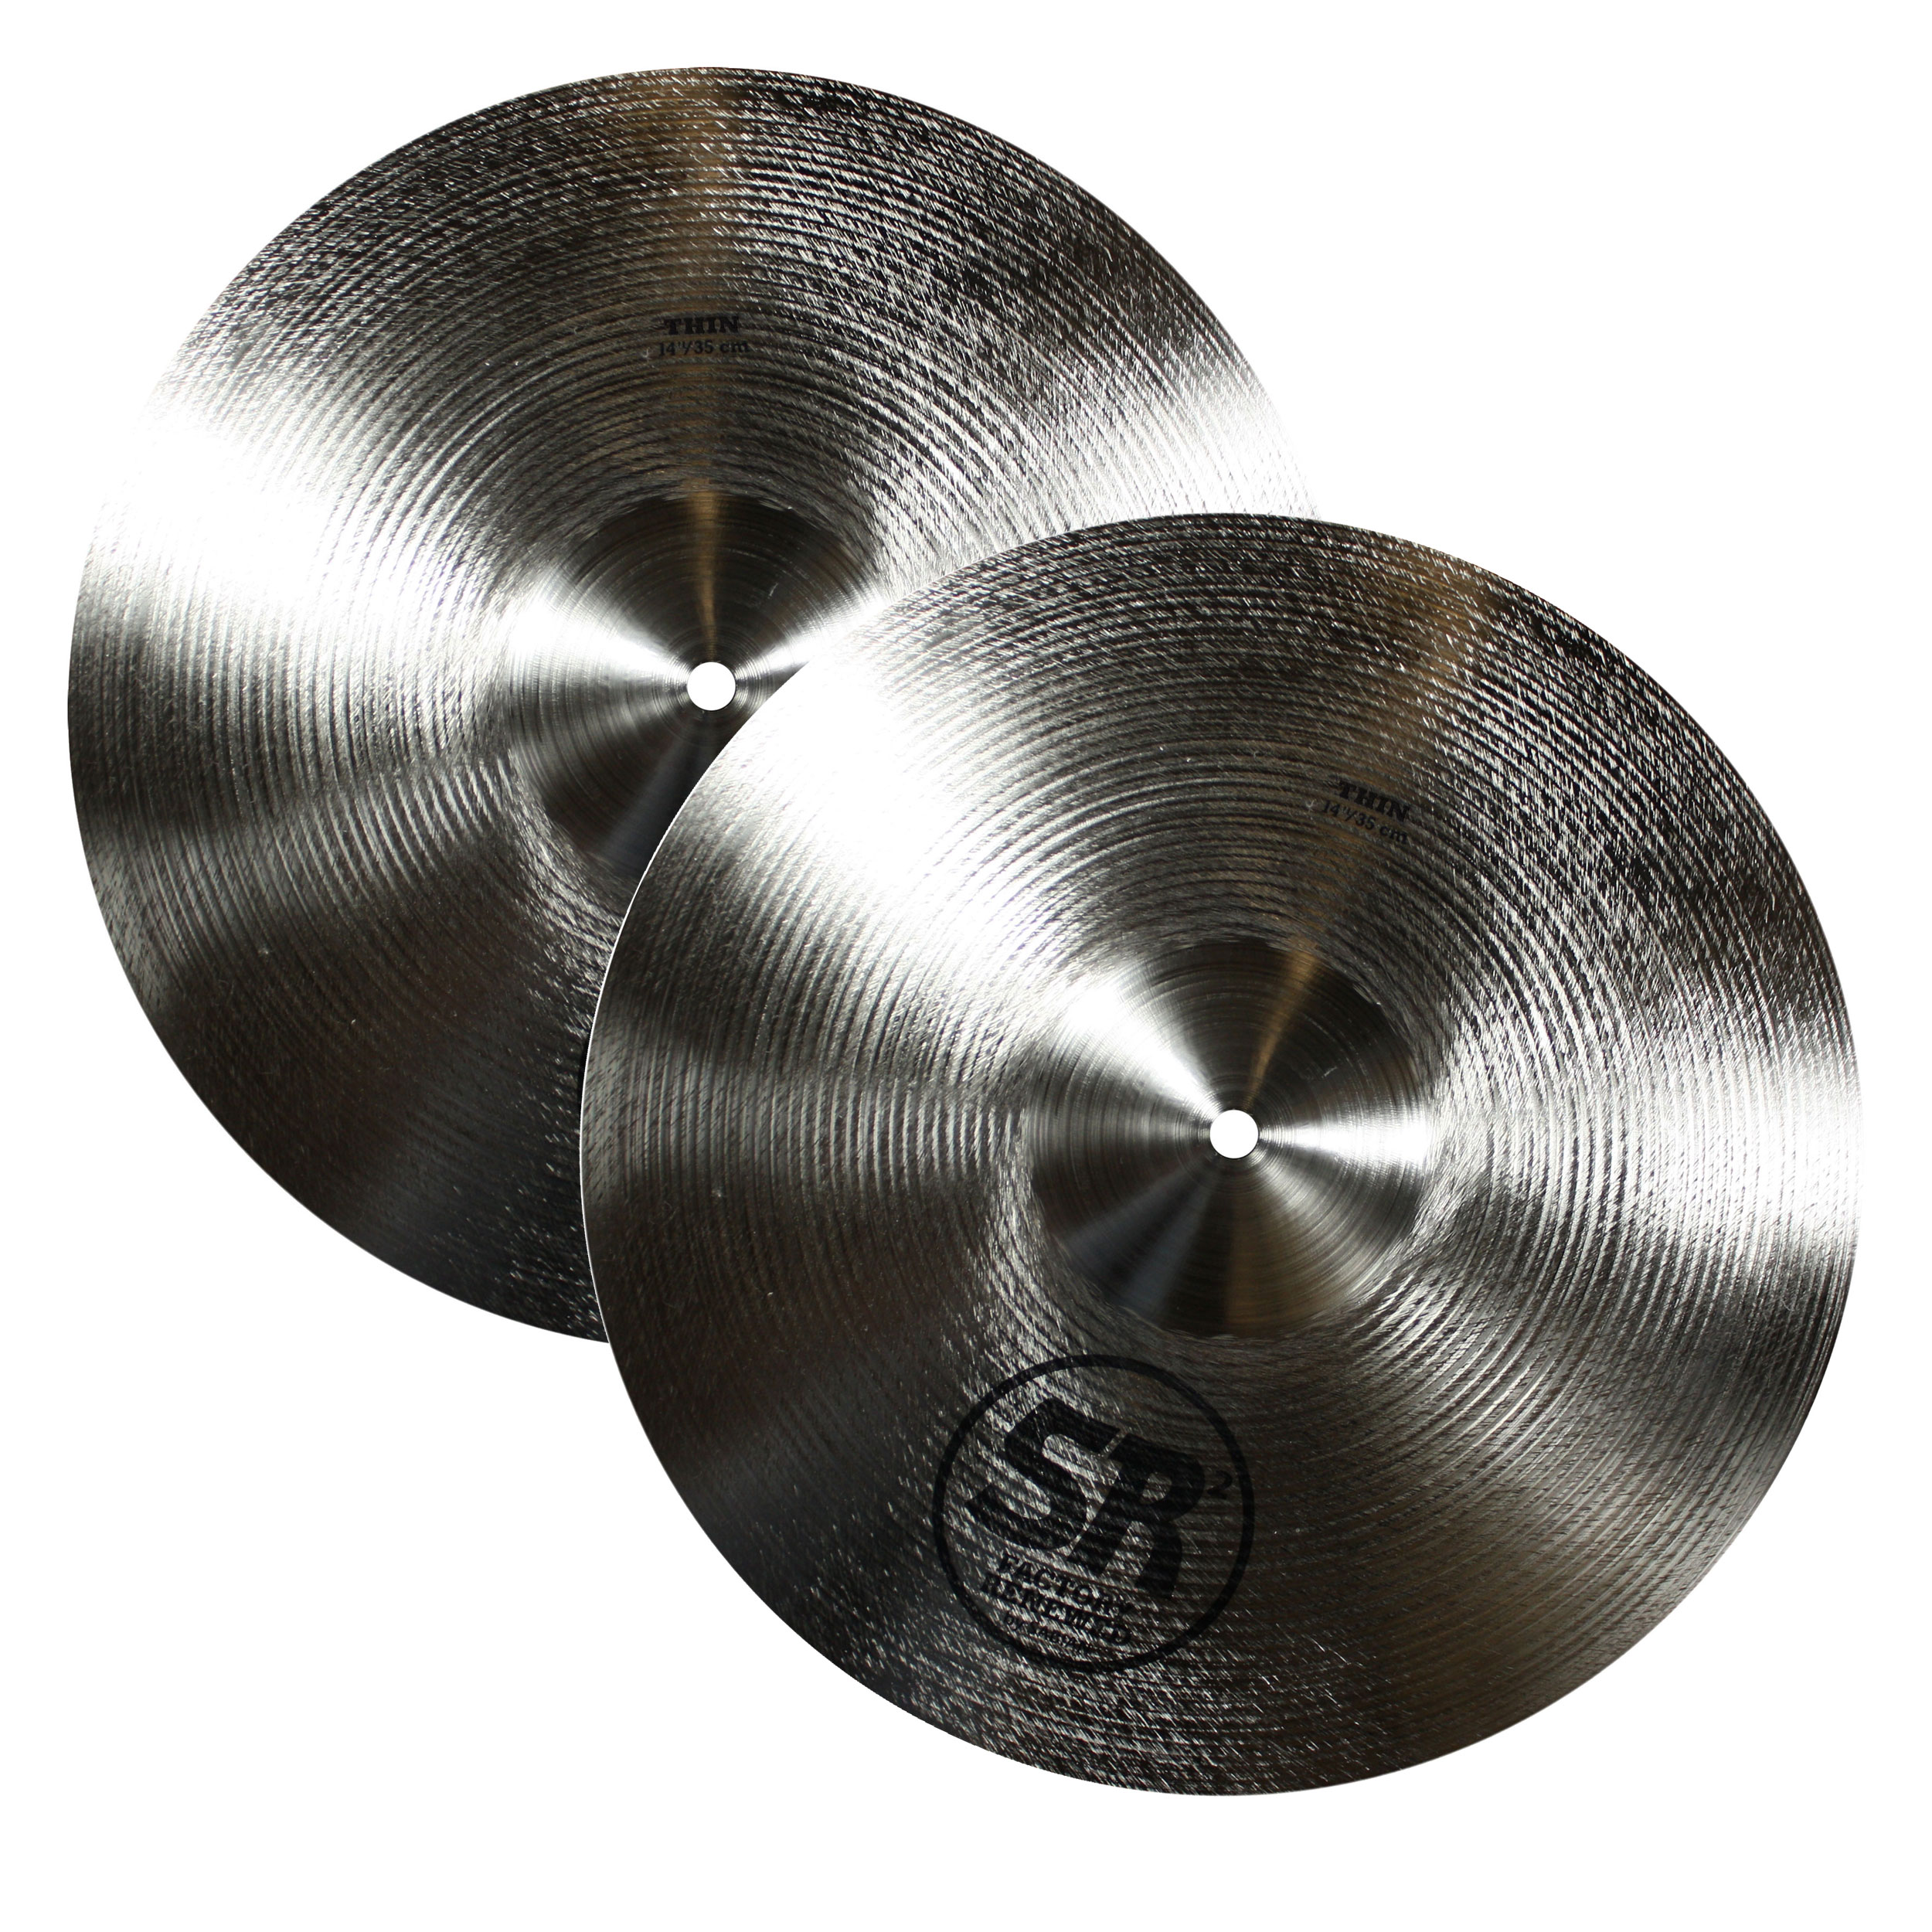 "Sabian 14"" SR2 Band & Orchestra Light Crash Cymbal Pair"